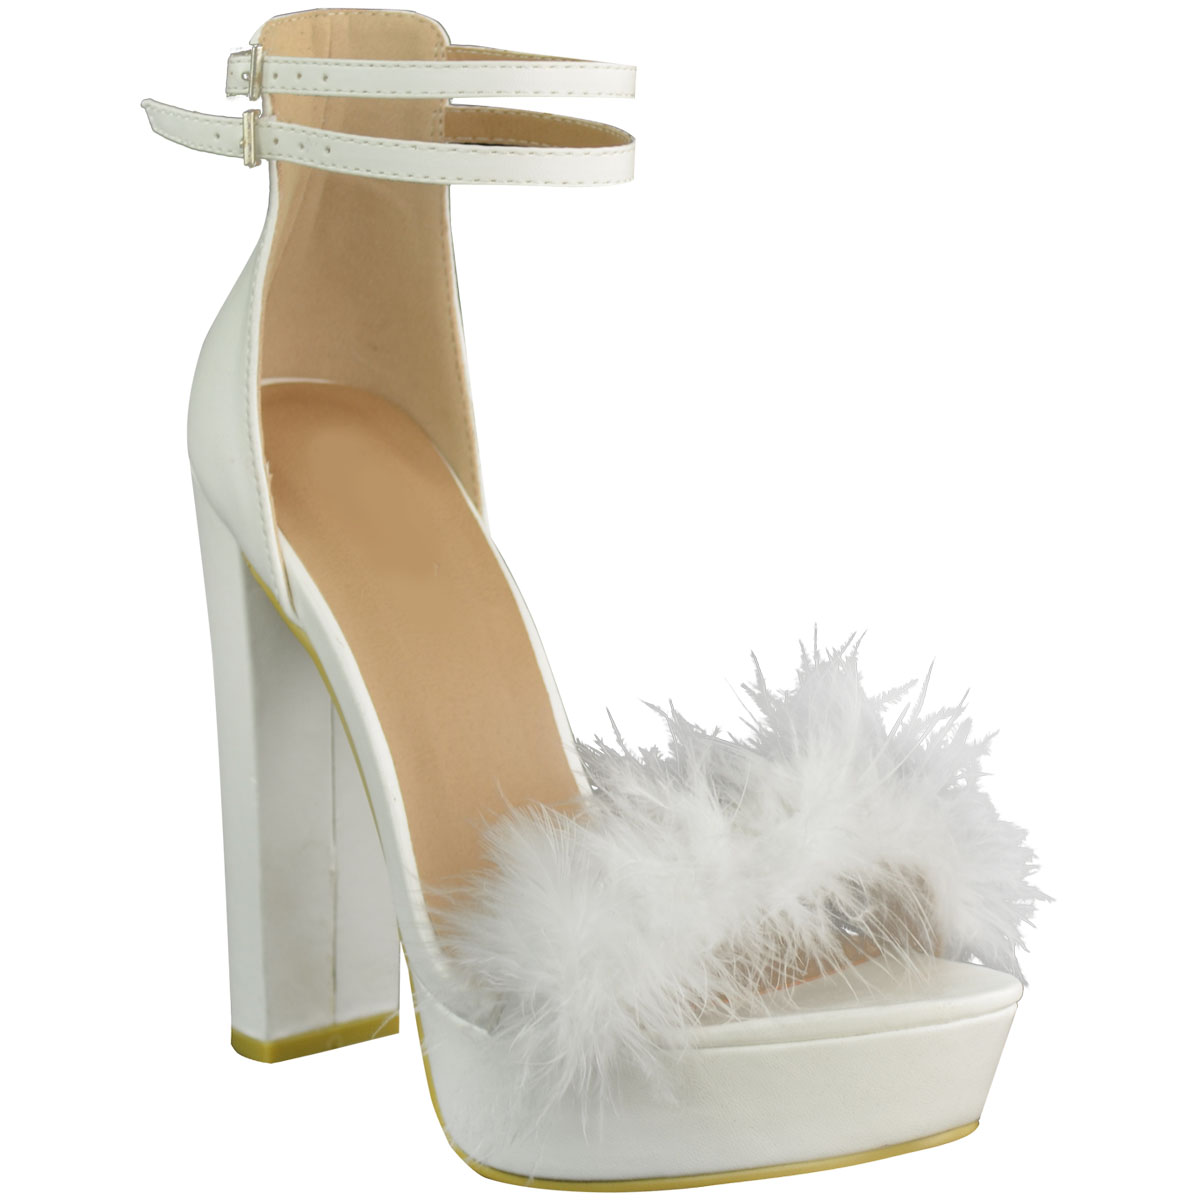 NEW WOMENS LADIES MARABOU FUR HIGH HEEL PLATFORM WEDGE SANDALS STRAPPY PARTY